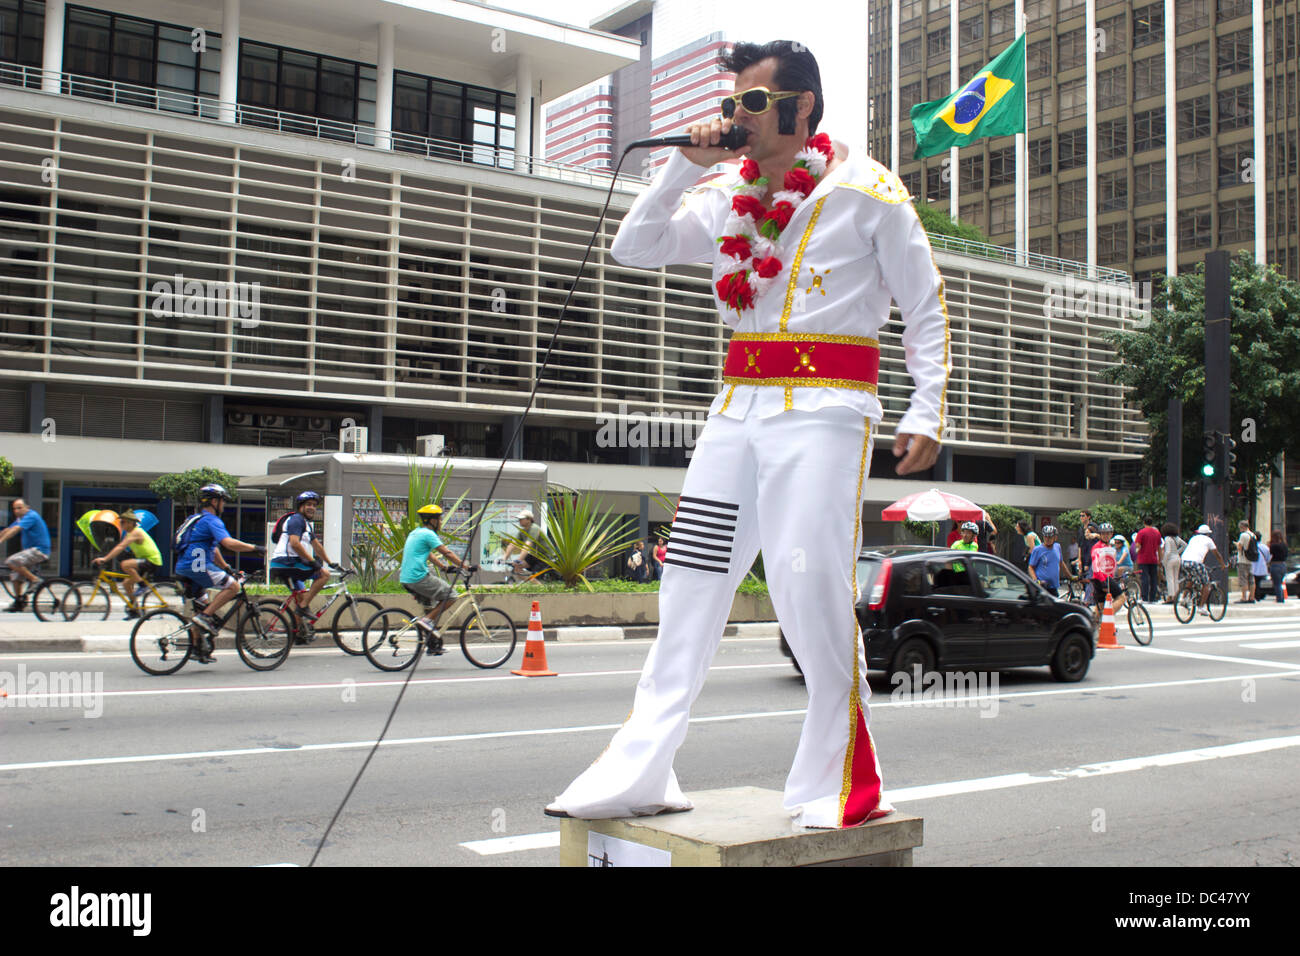 An Elvis impersonator performing on Avenida Paulista in Sao Paulo, Brazil, February 2013. - Stock Image